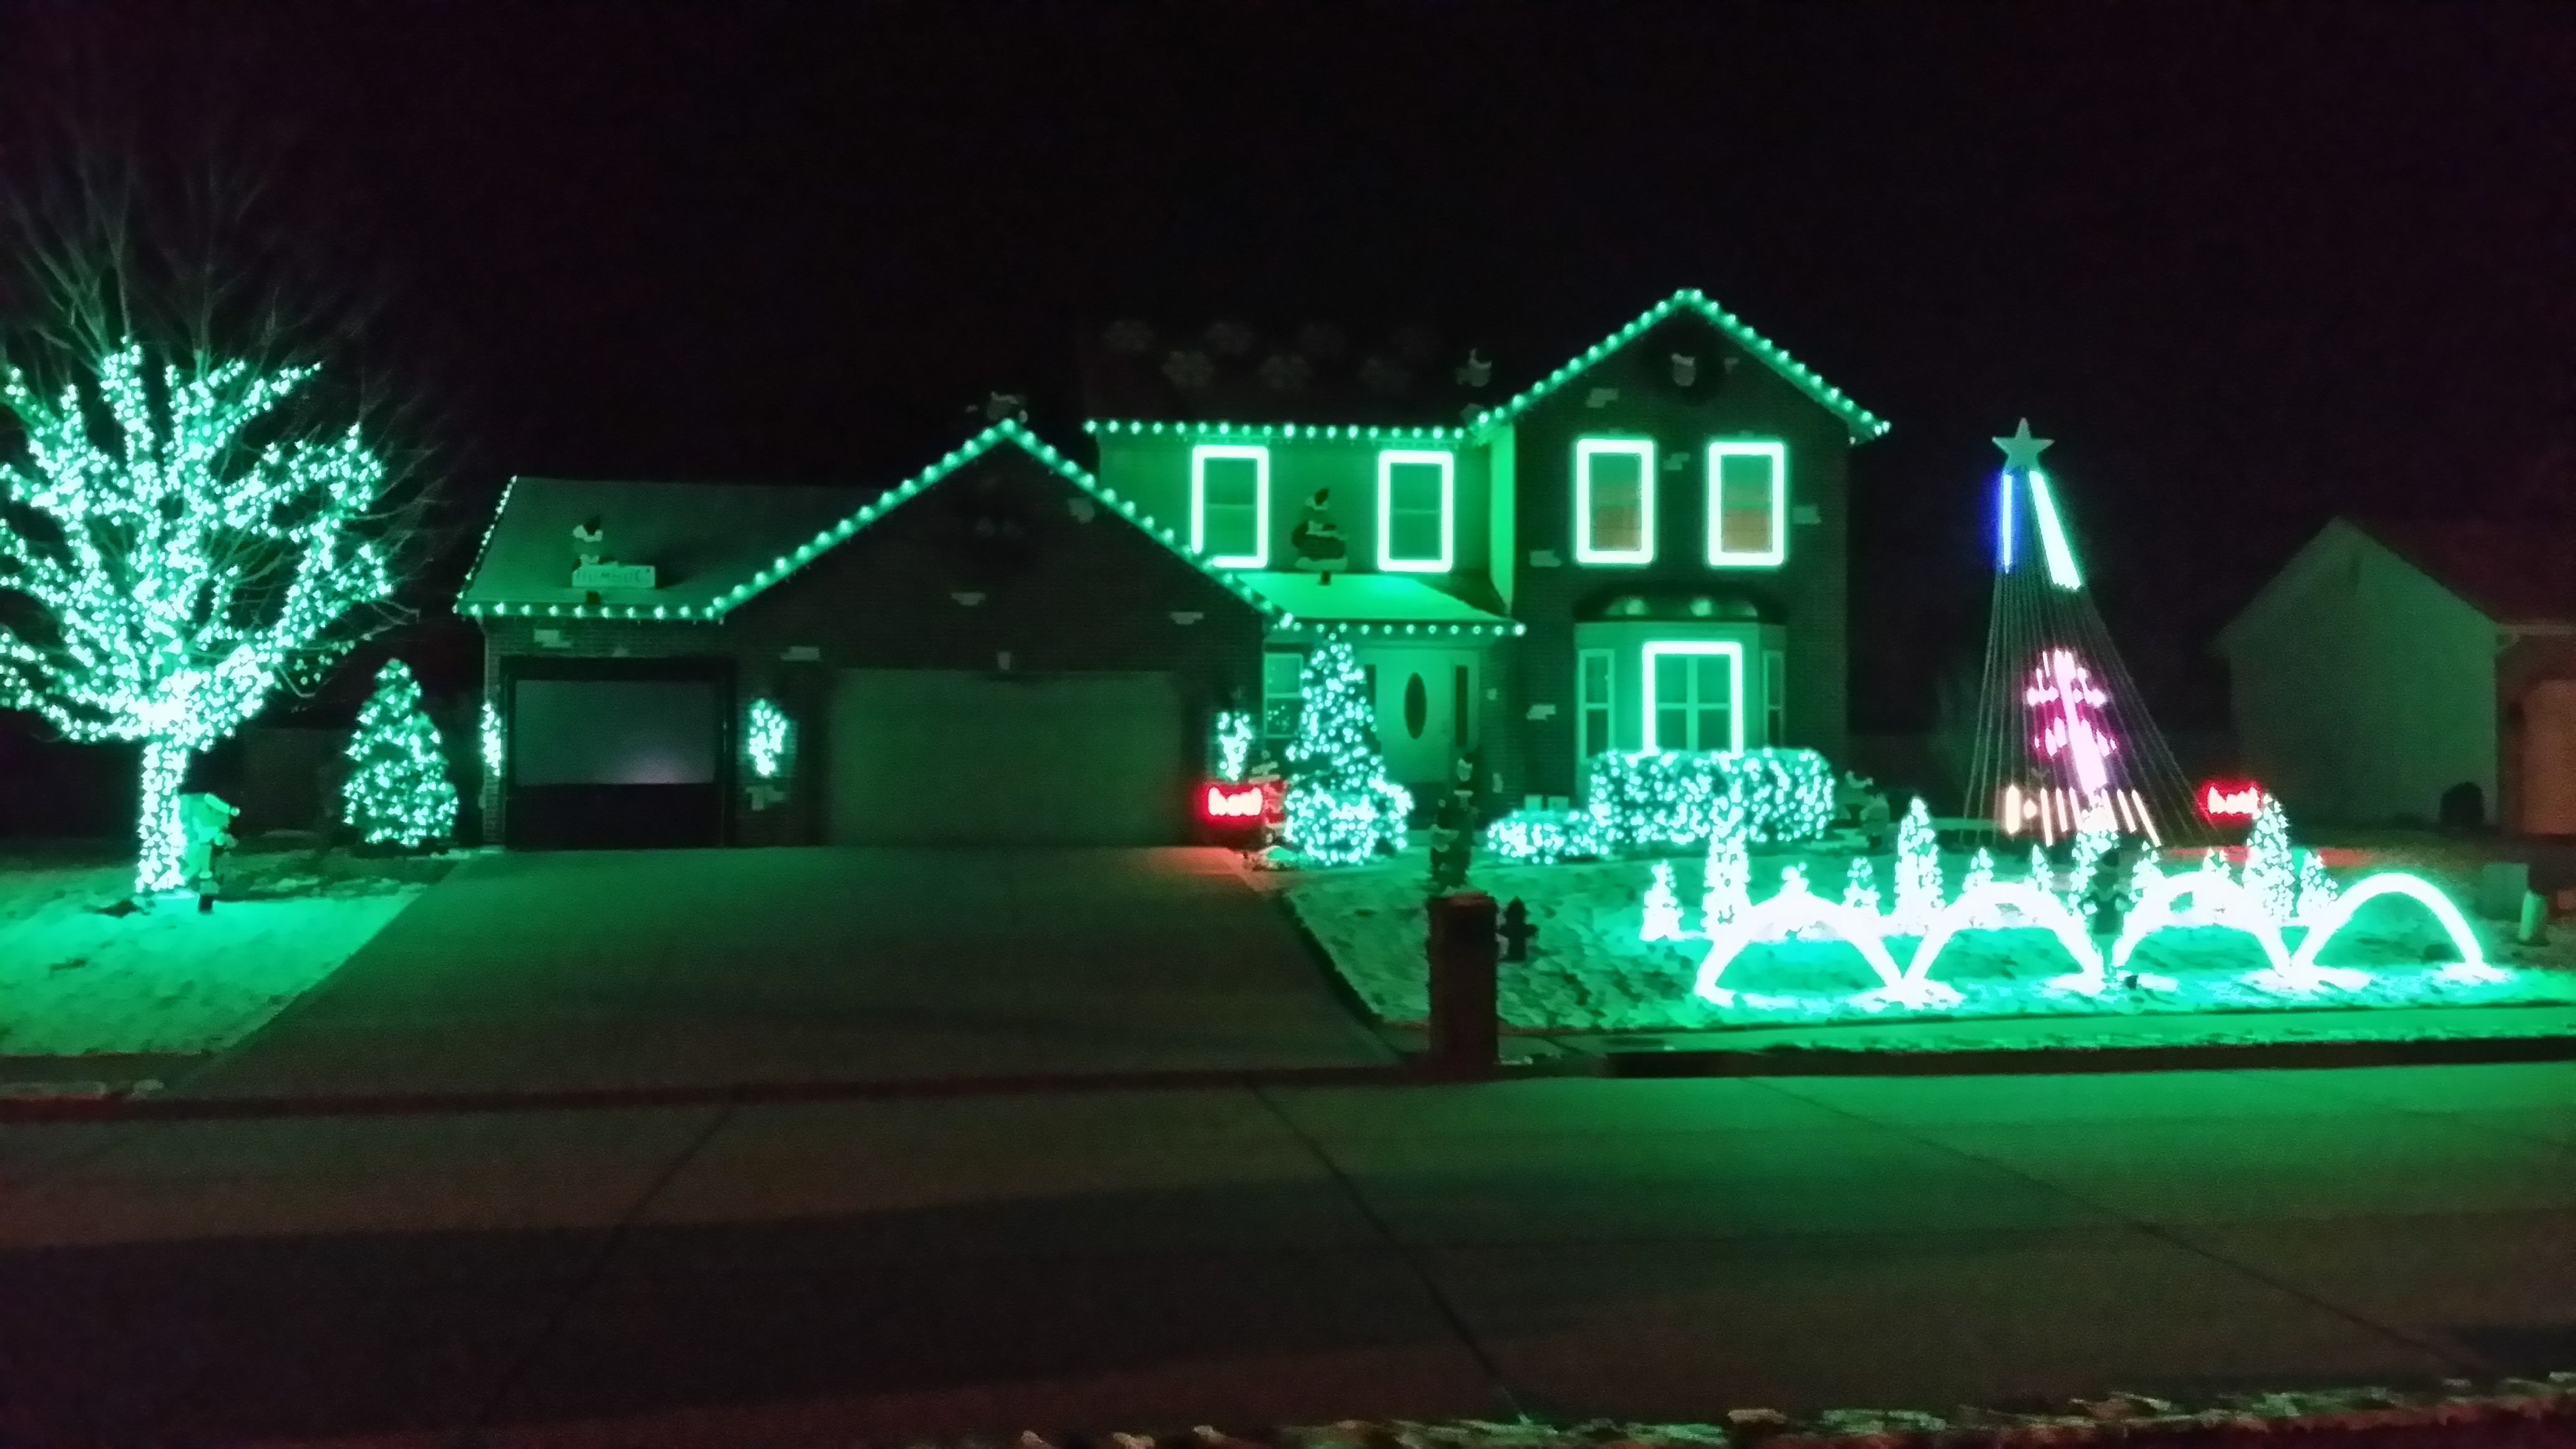 Green Christmas Lights.Green Christmas Lights Galore This Christmas Lights House